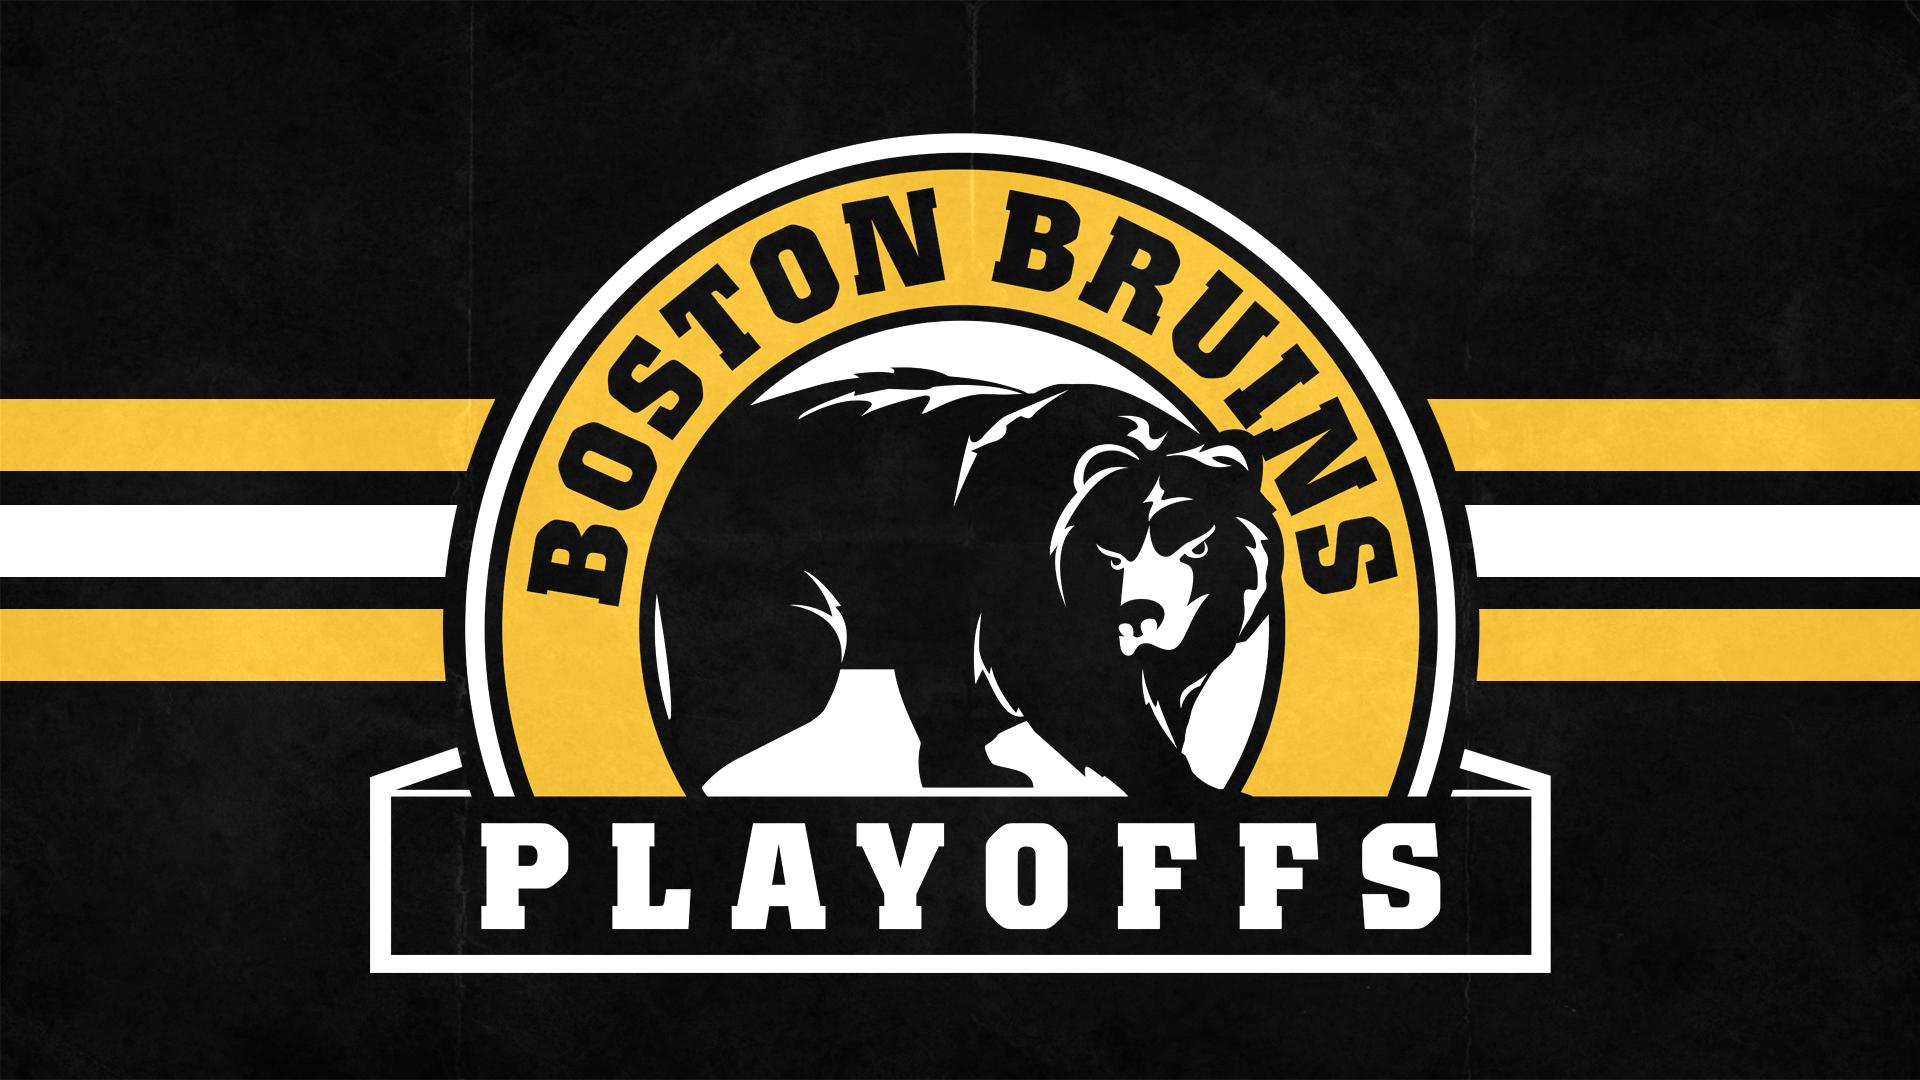 Boston-Bruins-1920×1080-Boston-Bruins-Backgrounds-Adorable-wallpaper-wp3603679